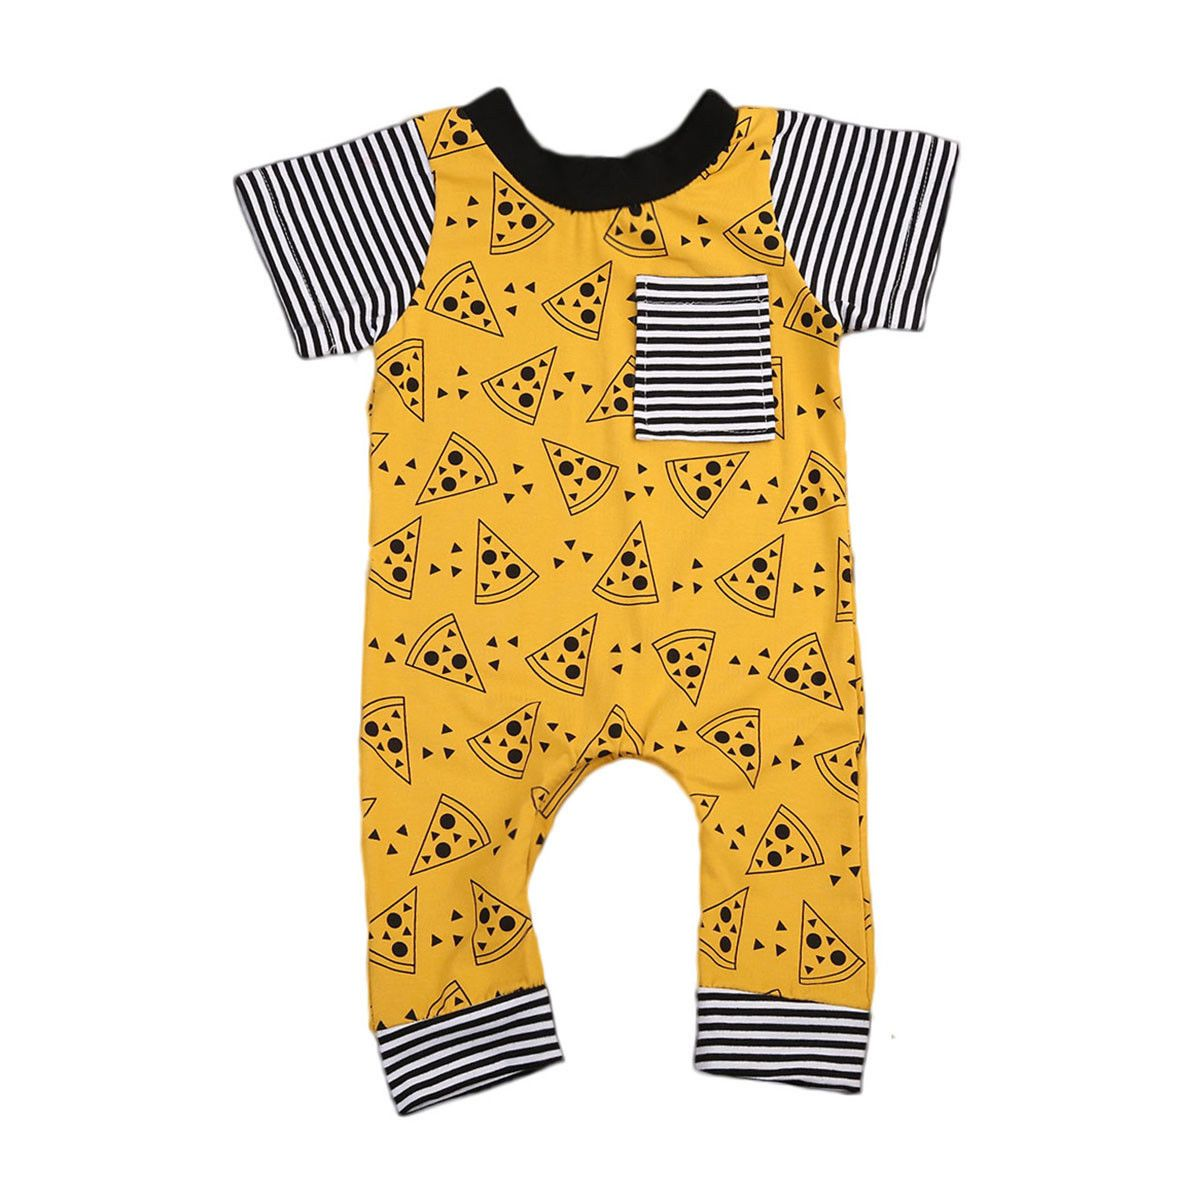 Baby Cute Biscuits Clothes Newborn Striped One-piece Romper Boy Girl Short Sleeve Outfits Clothes 0-24M  UpCube- upcube